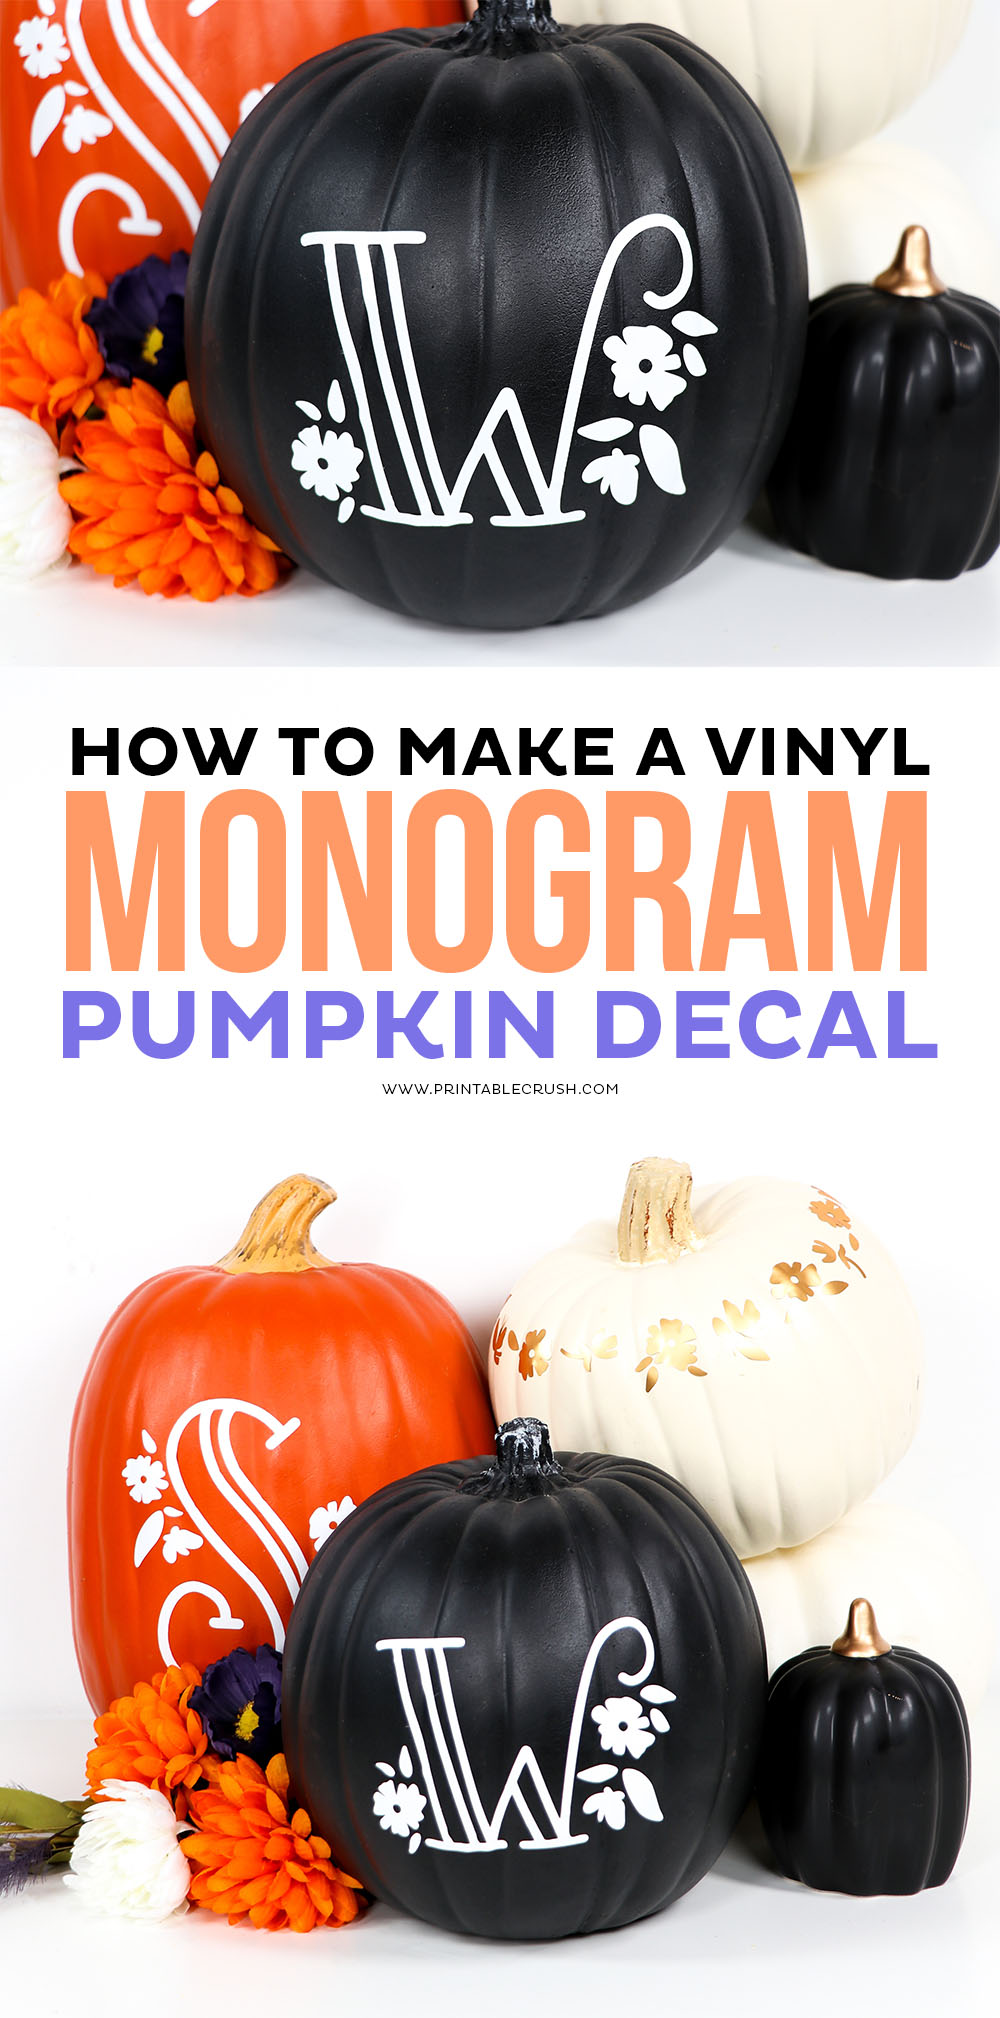 Make a monogram decal with vinyl